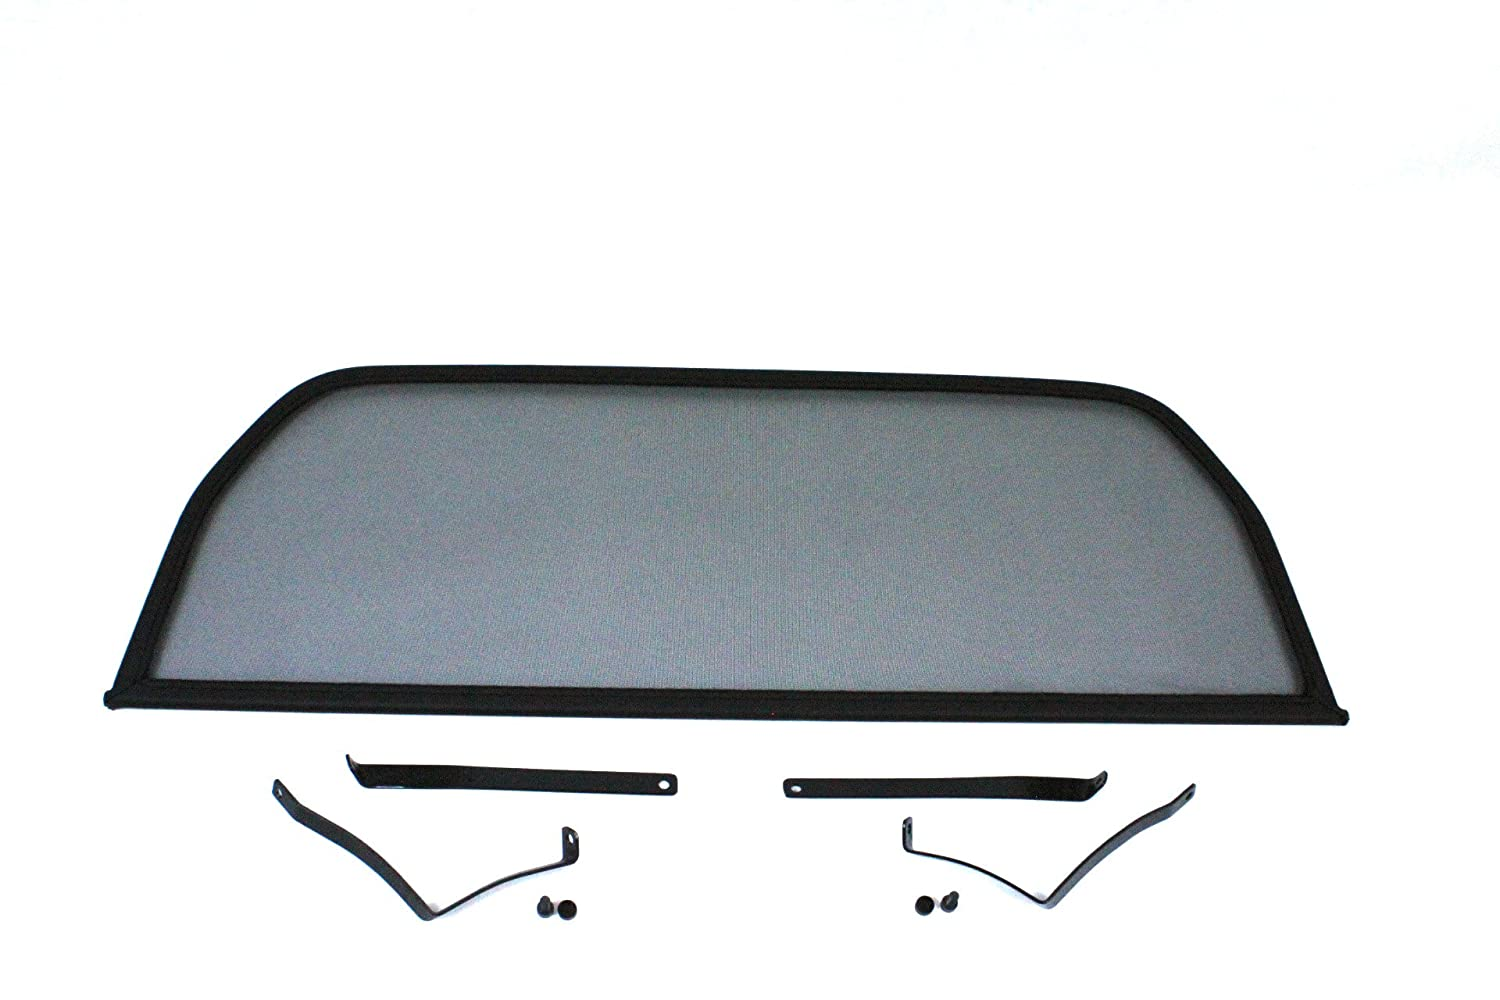 GermanTuningParts Dé flecteur de vent pour Alfa Spider 105 115 (1964-1994) - Noir | Filet Anti-Remous Coupe | Dé flecteur d'air